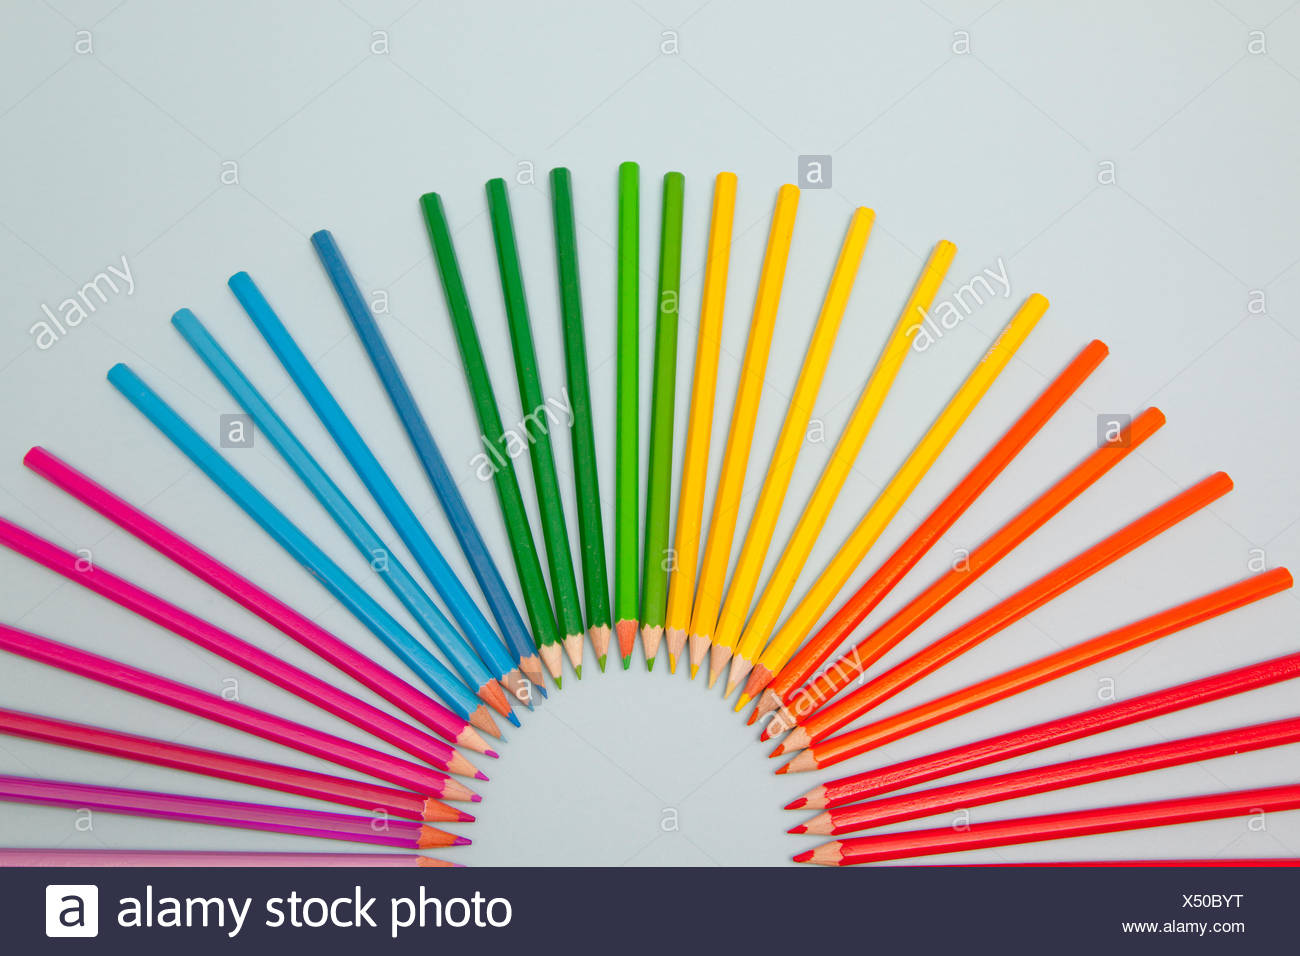 Colored Pencils arranged in semi circle - Stock Image